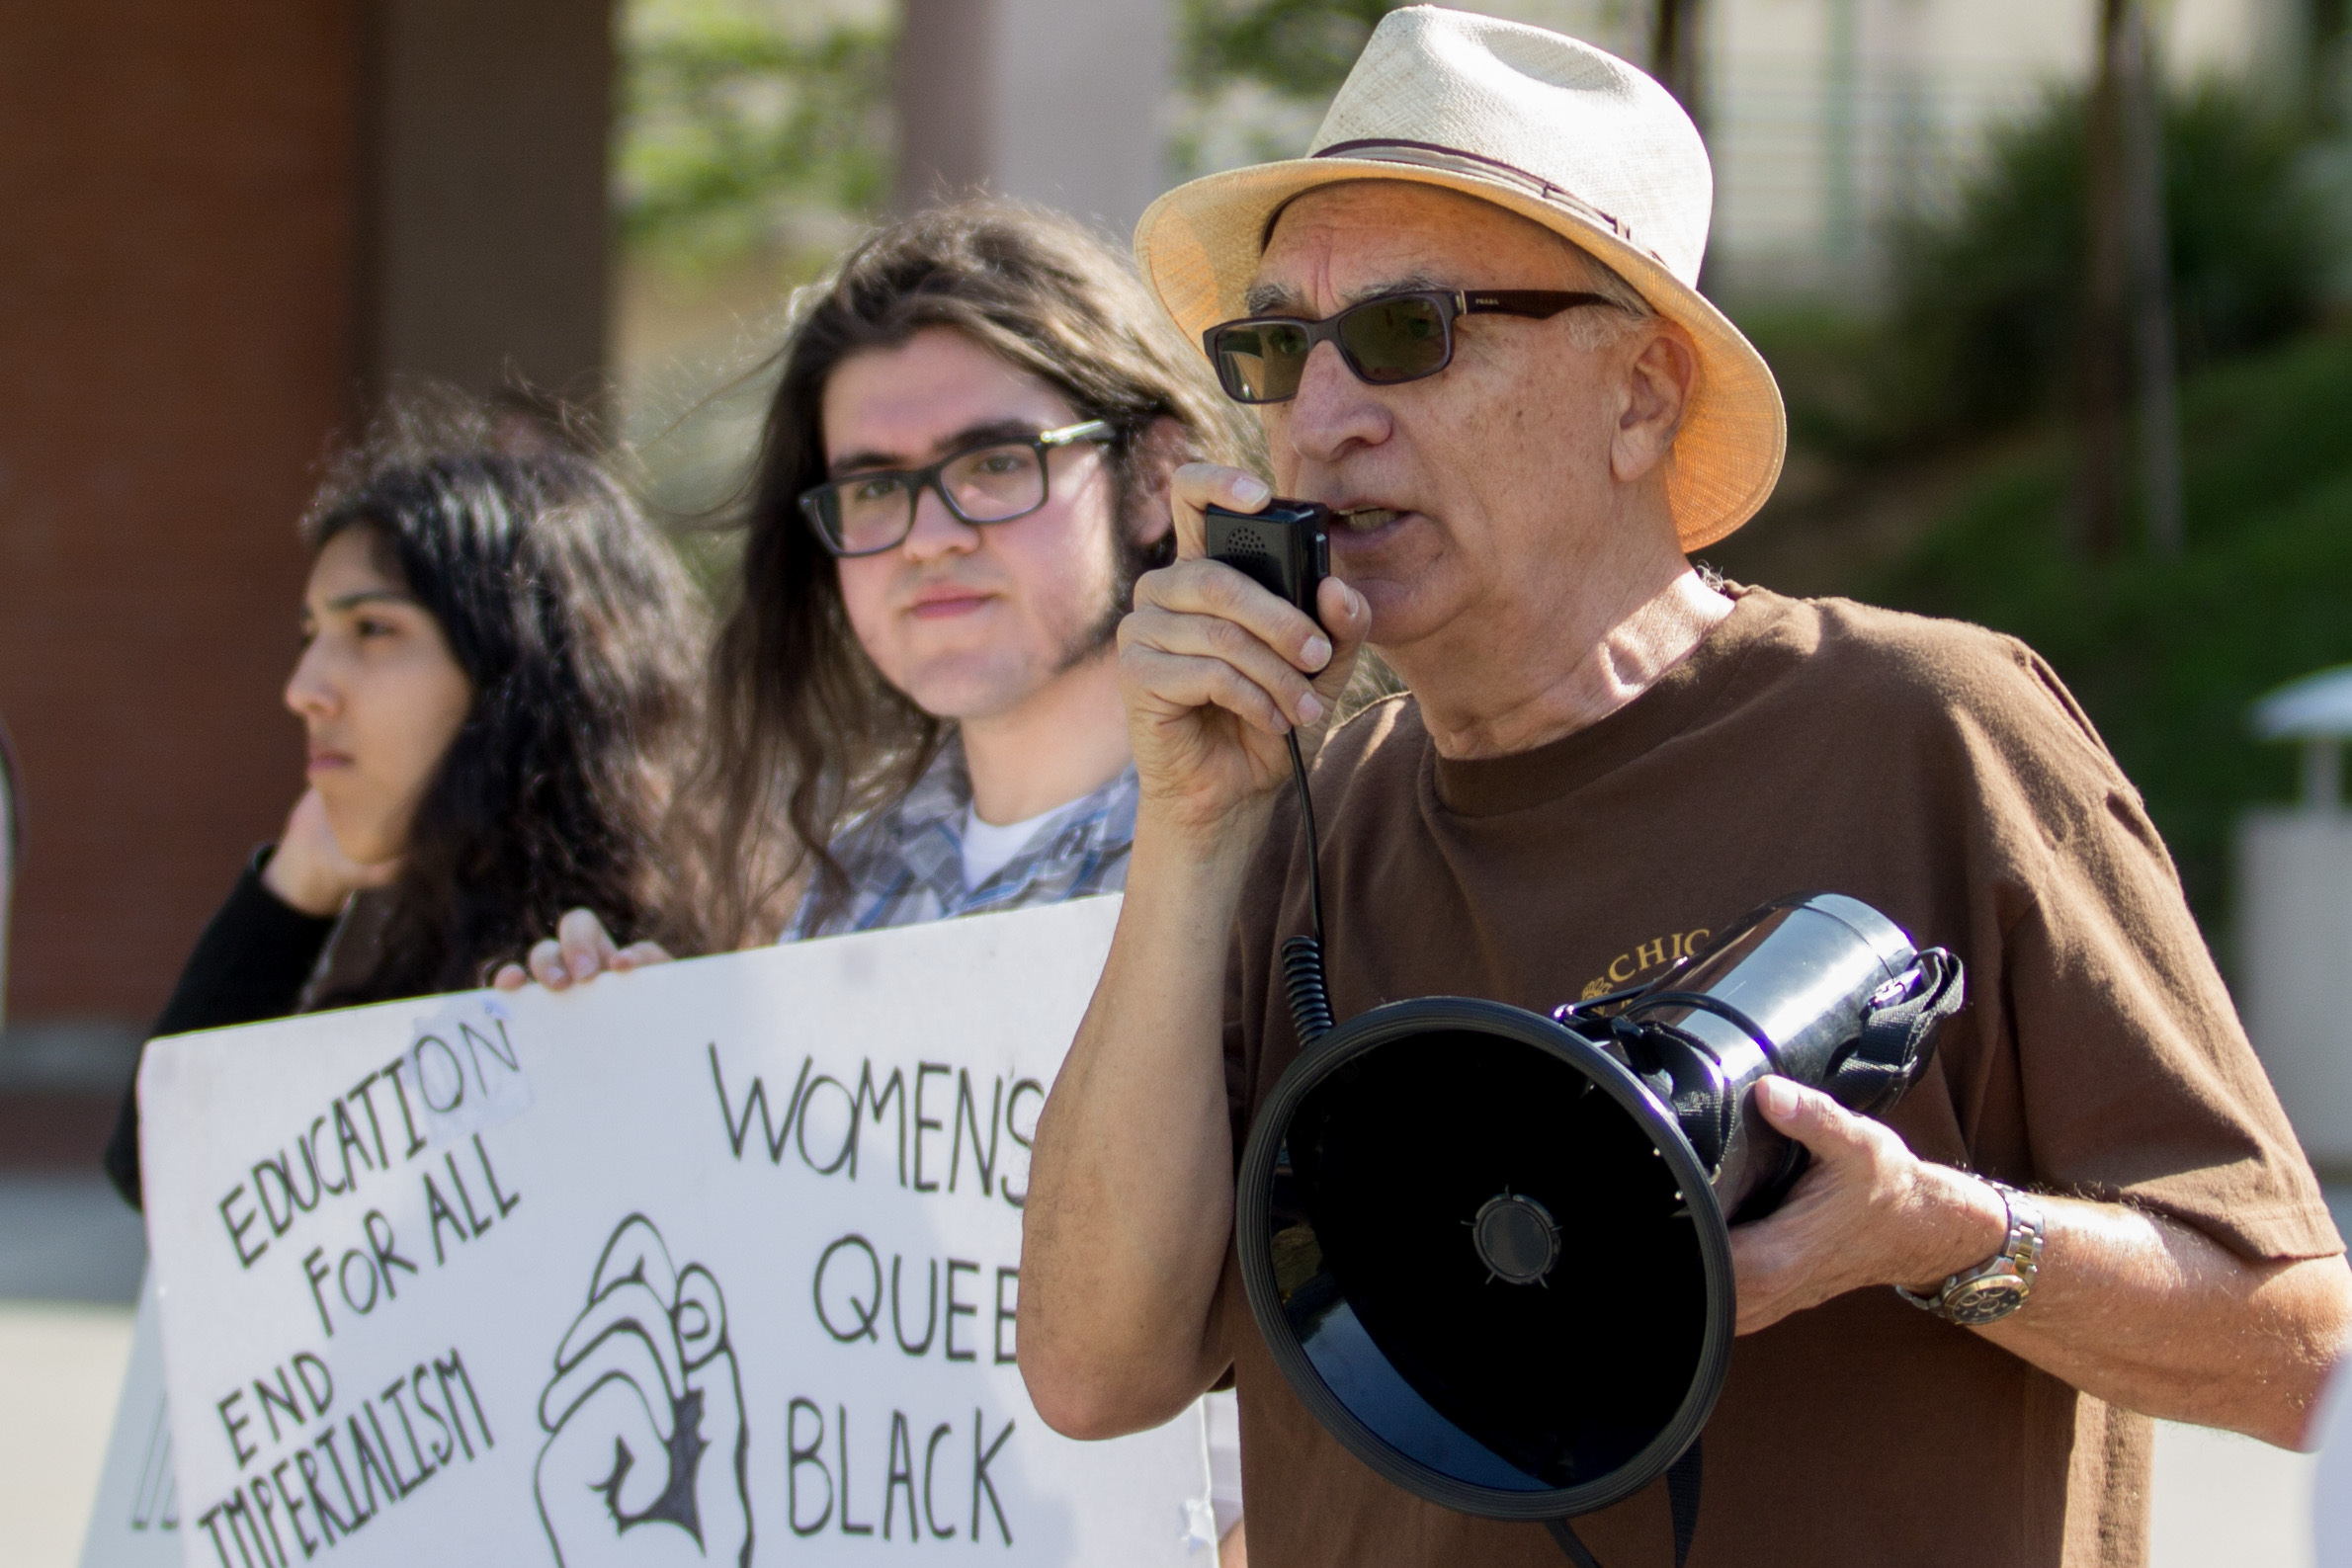 Guest speaker and Community Service Organization member Carlos Montez (right) speaks on his beliefs of US imperialism as Lorenzo Osterhein (center) and Lourdes Fuentes (left) listen in at the Hands Off Syria at Pasadena City College in Pasadena California on April 11, 2017 (Photo By: Zane Meyer-Thornton)